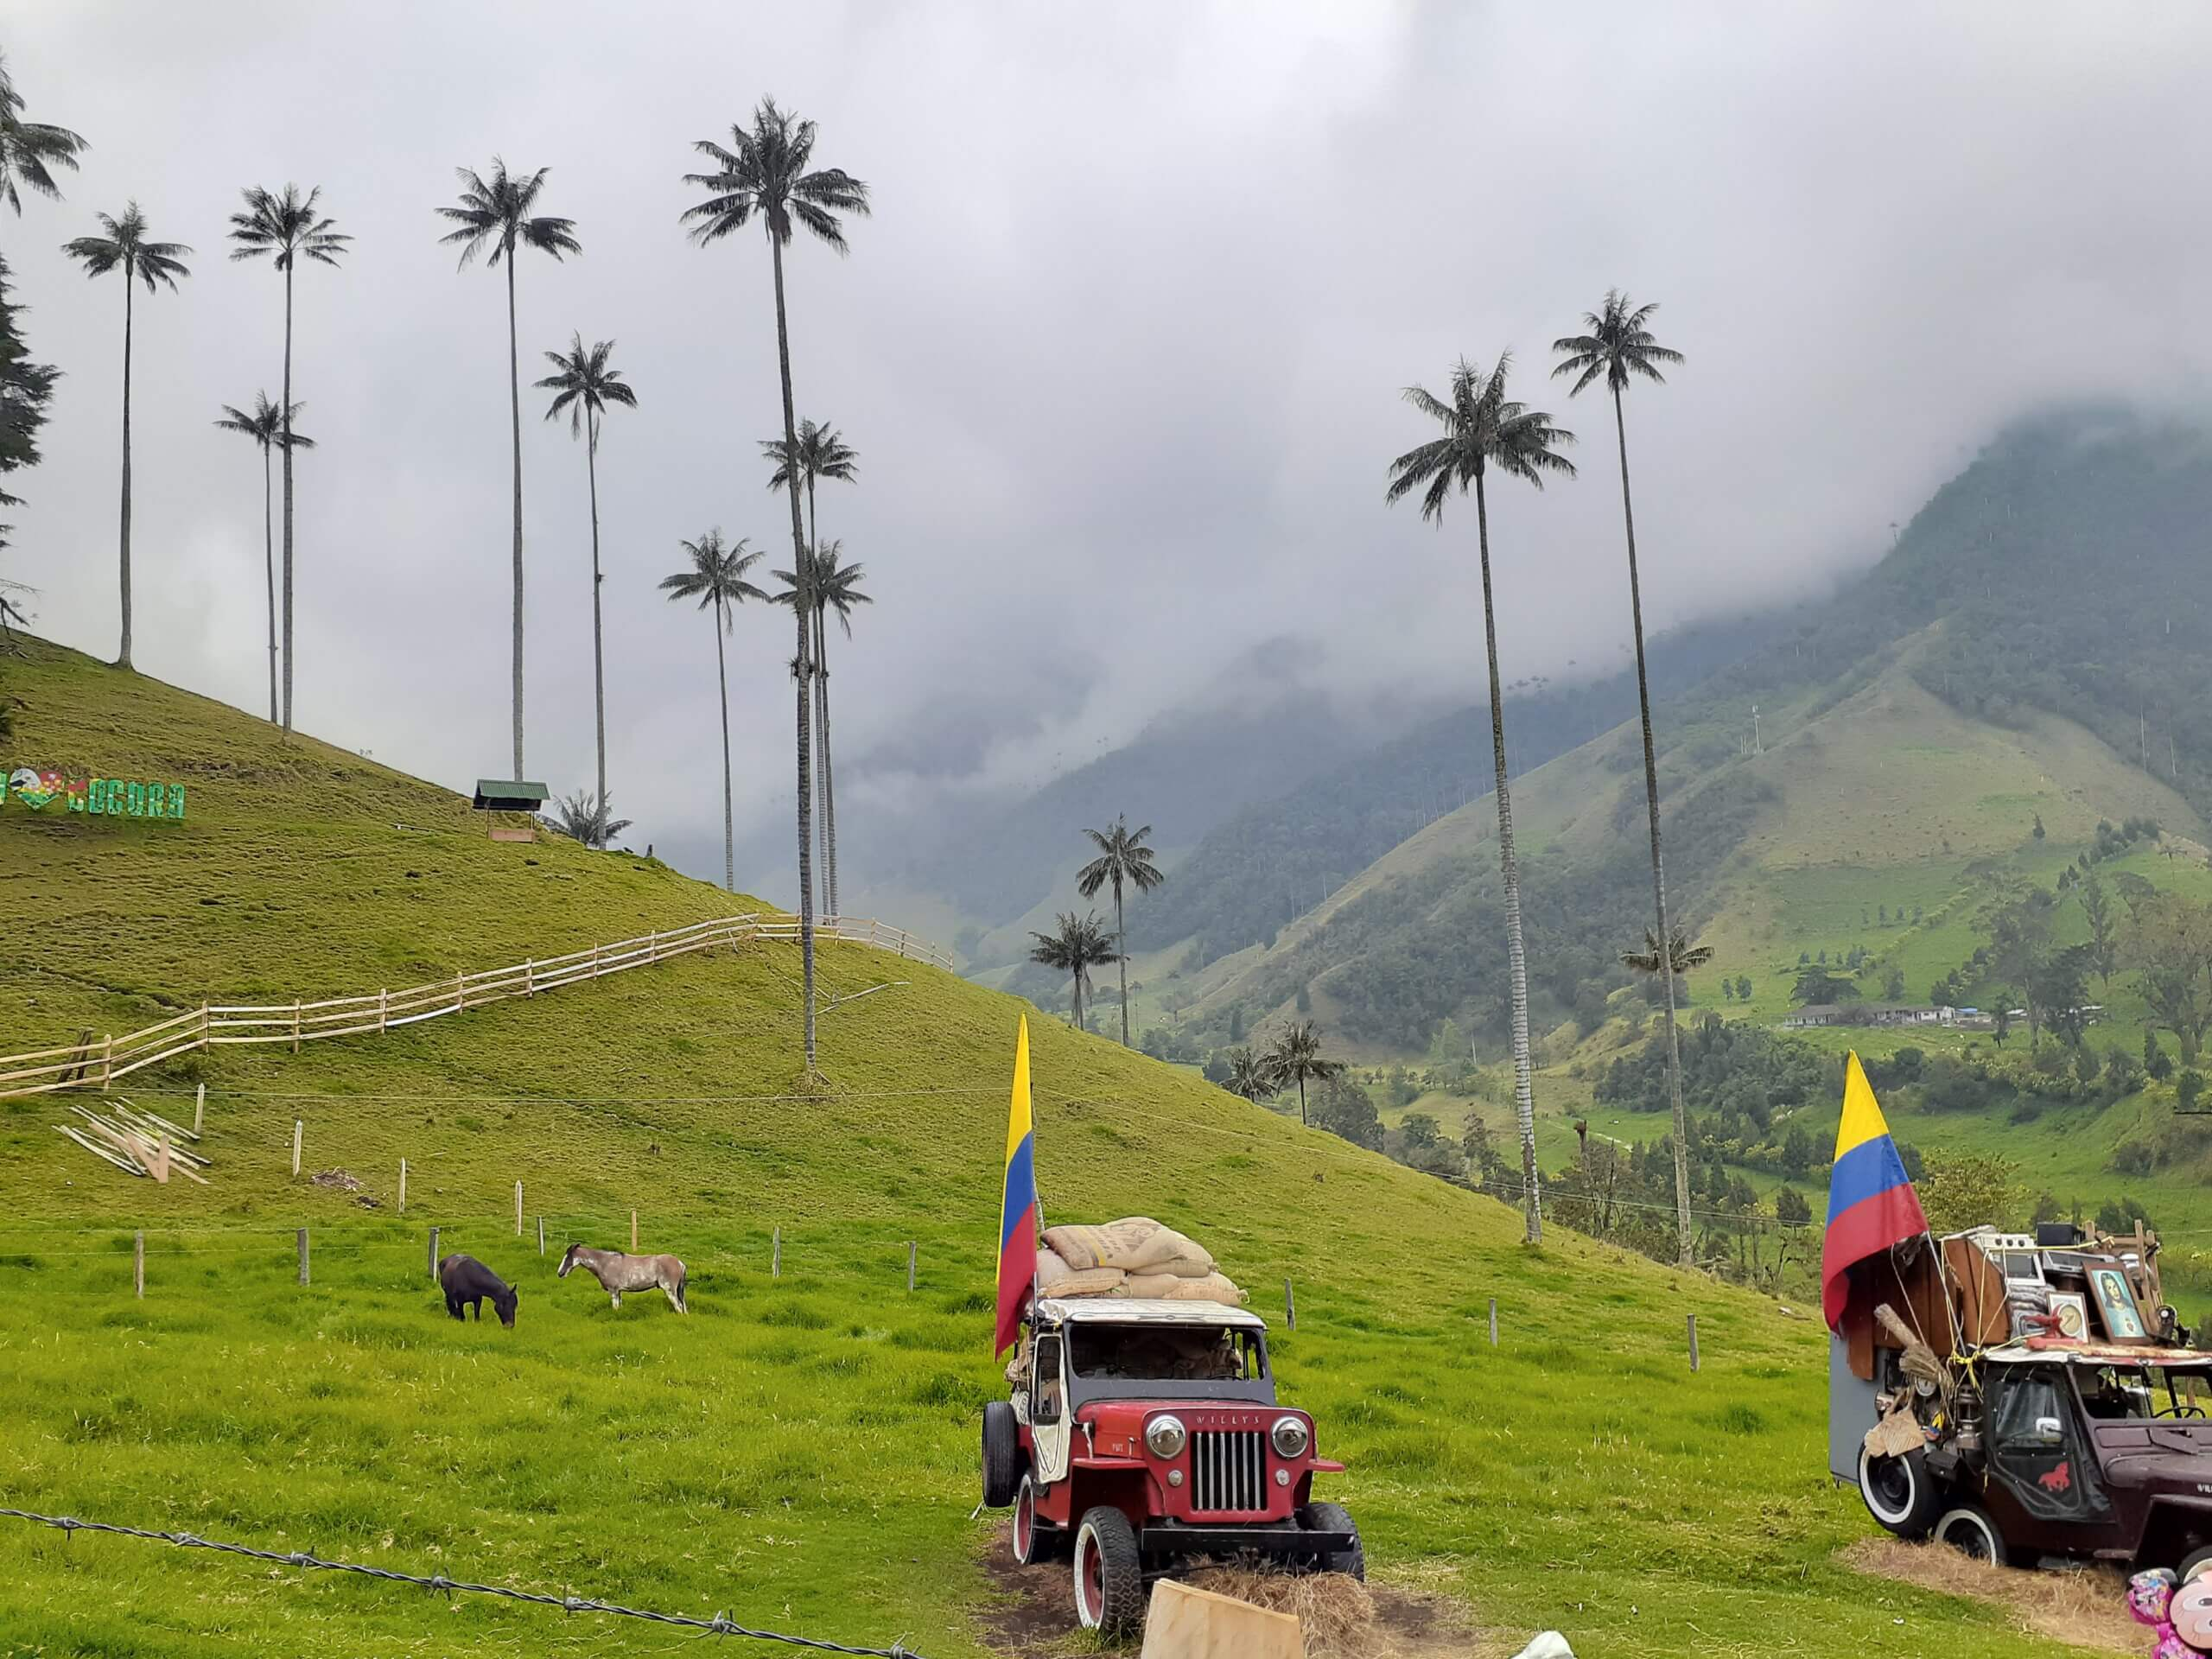 colombian-highlights-15-days-tour-starting-in-bogota